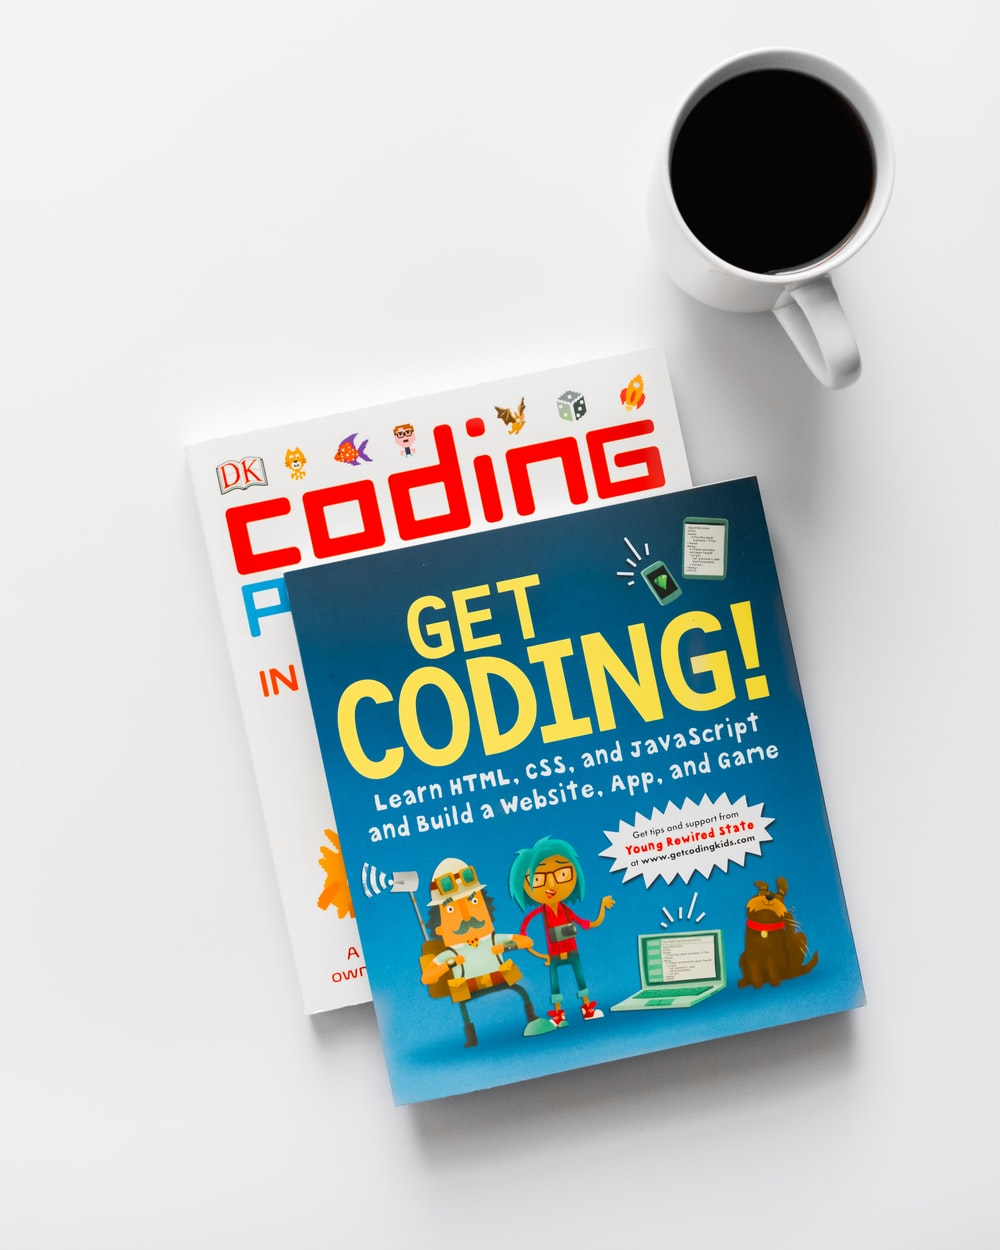 Get Coding and Coding books beside cup of coffee